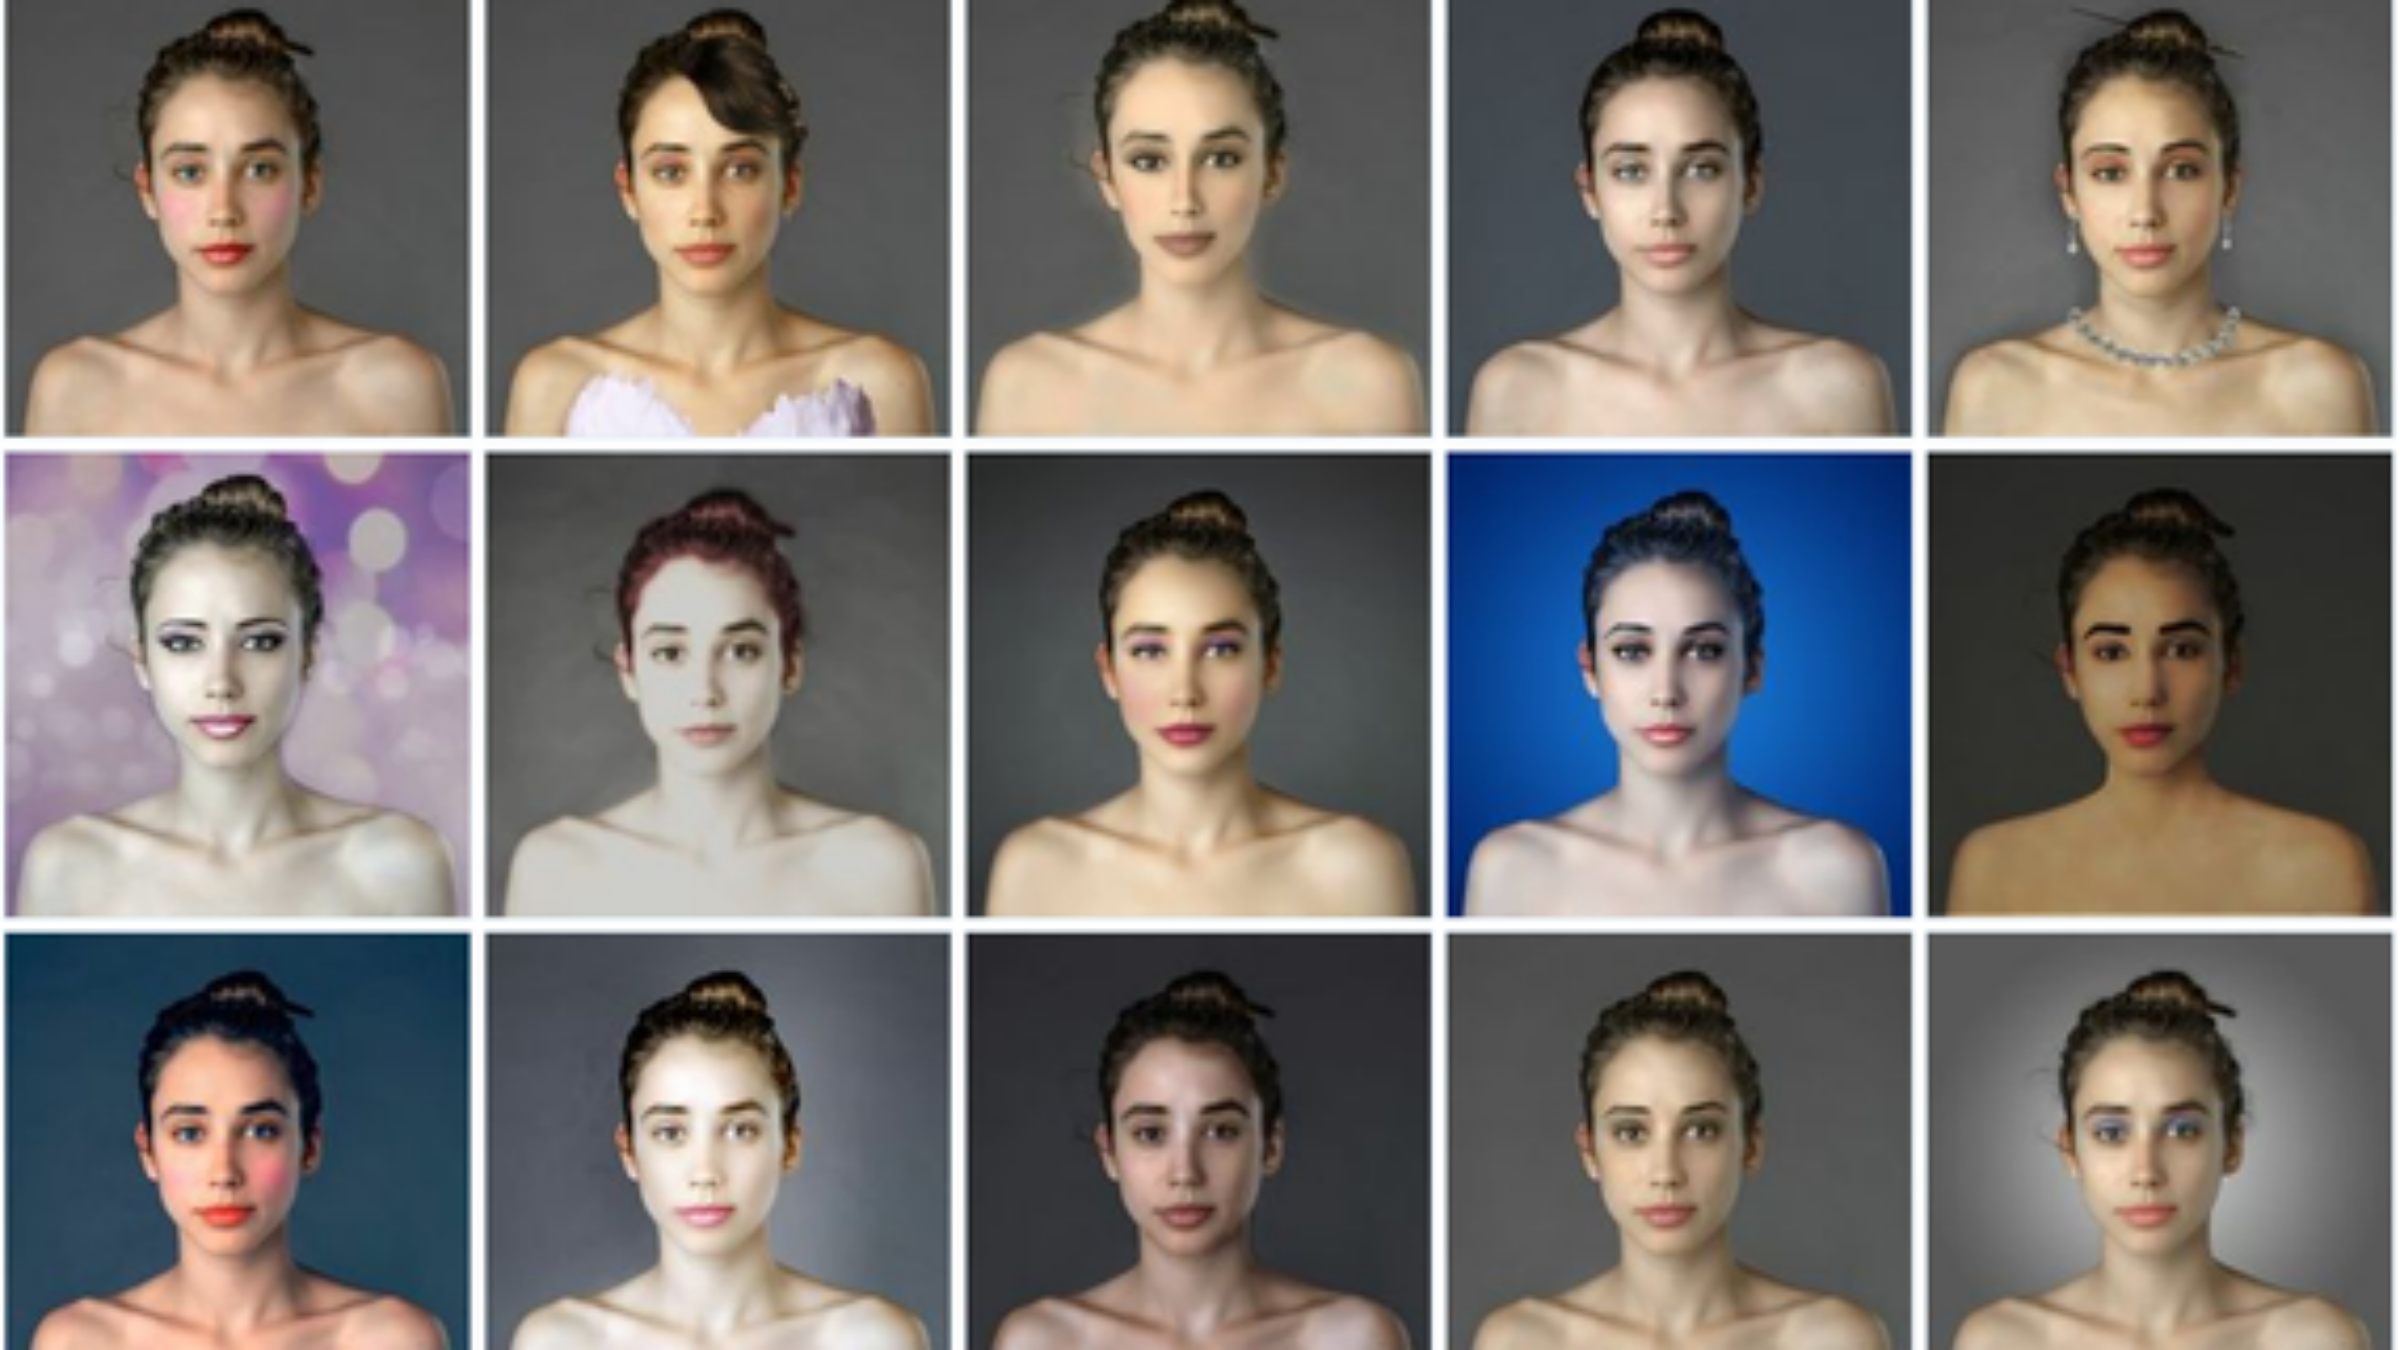 A compilation of different pictures of the same woman